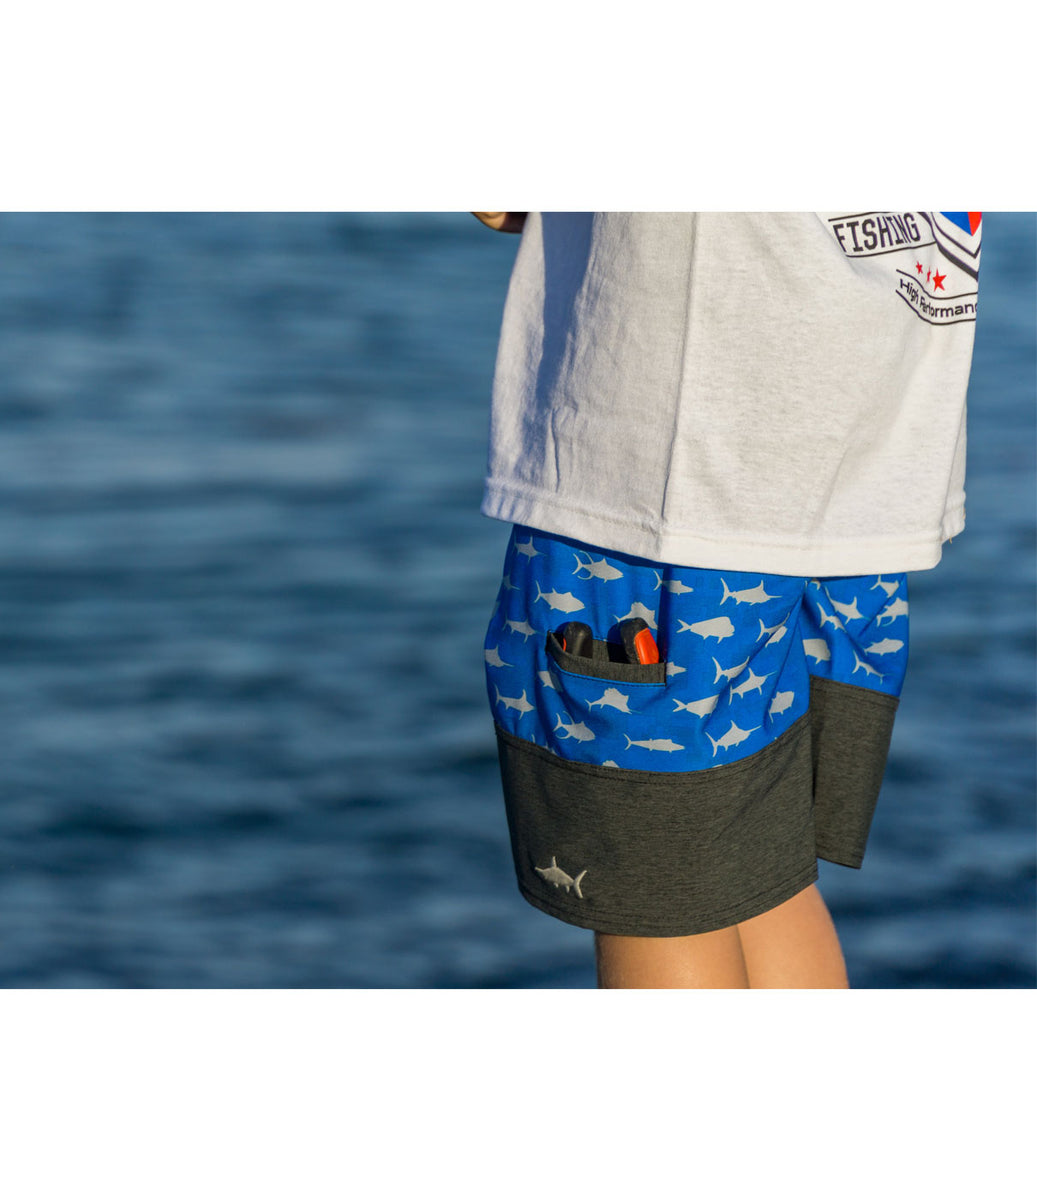 Ridgemont Fishing Boardshort - Youth Big Image - 3